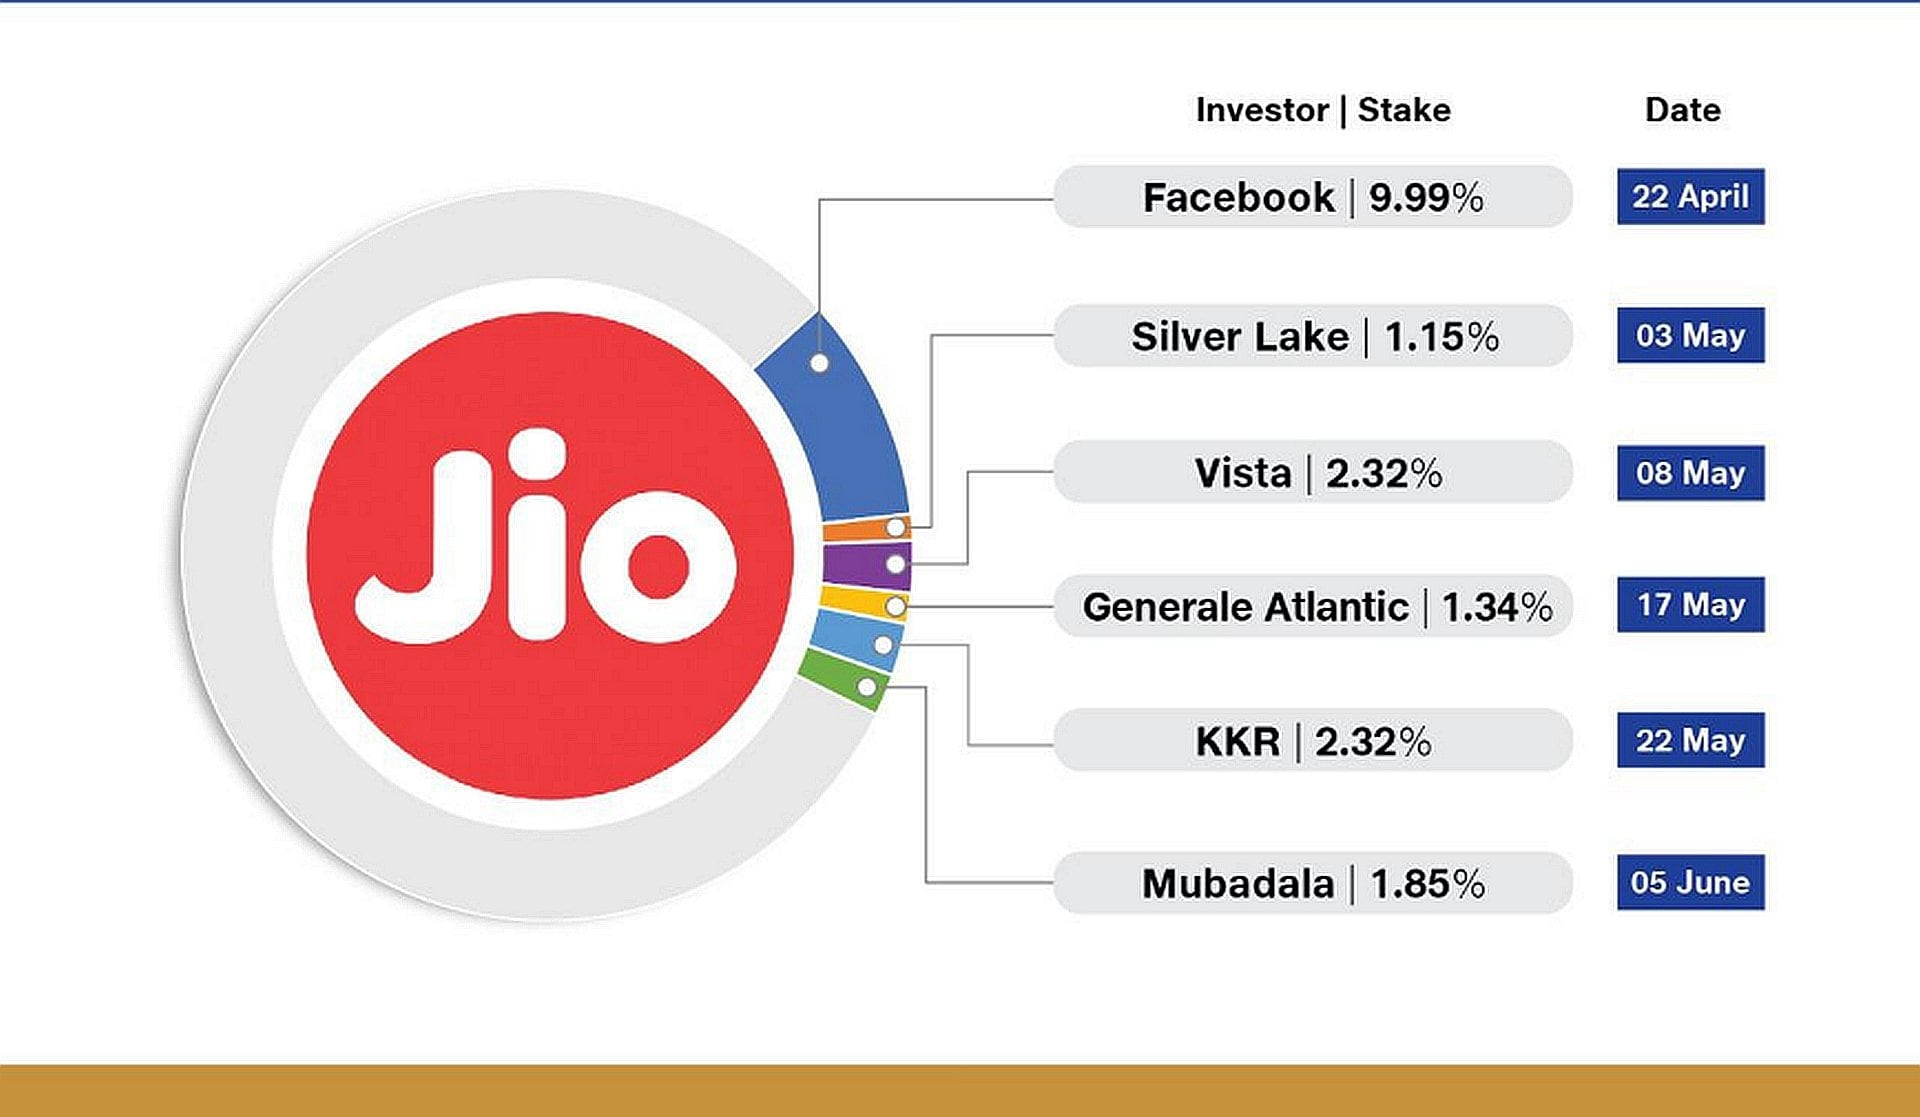 A timeline of Jio's investments